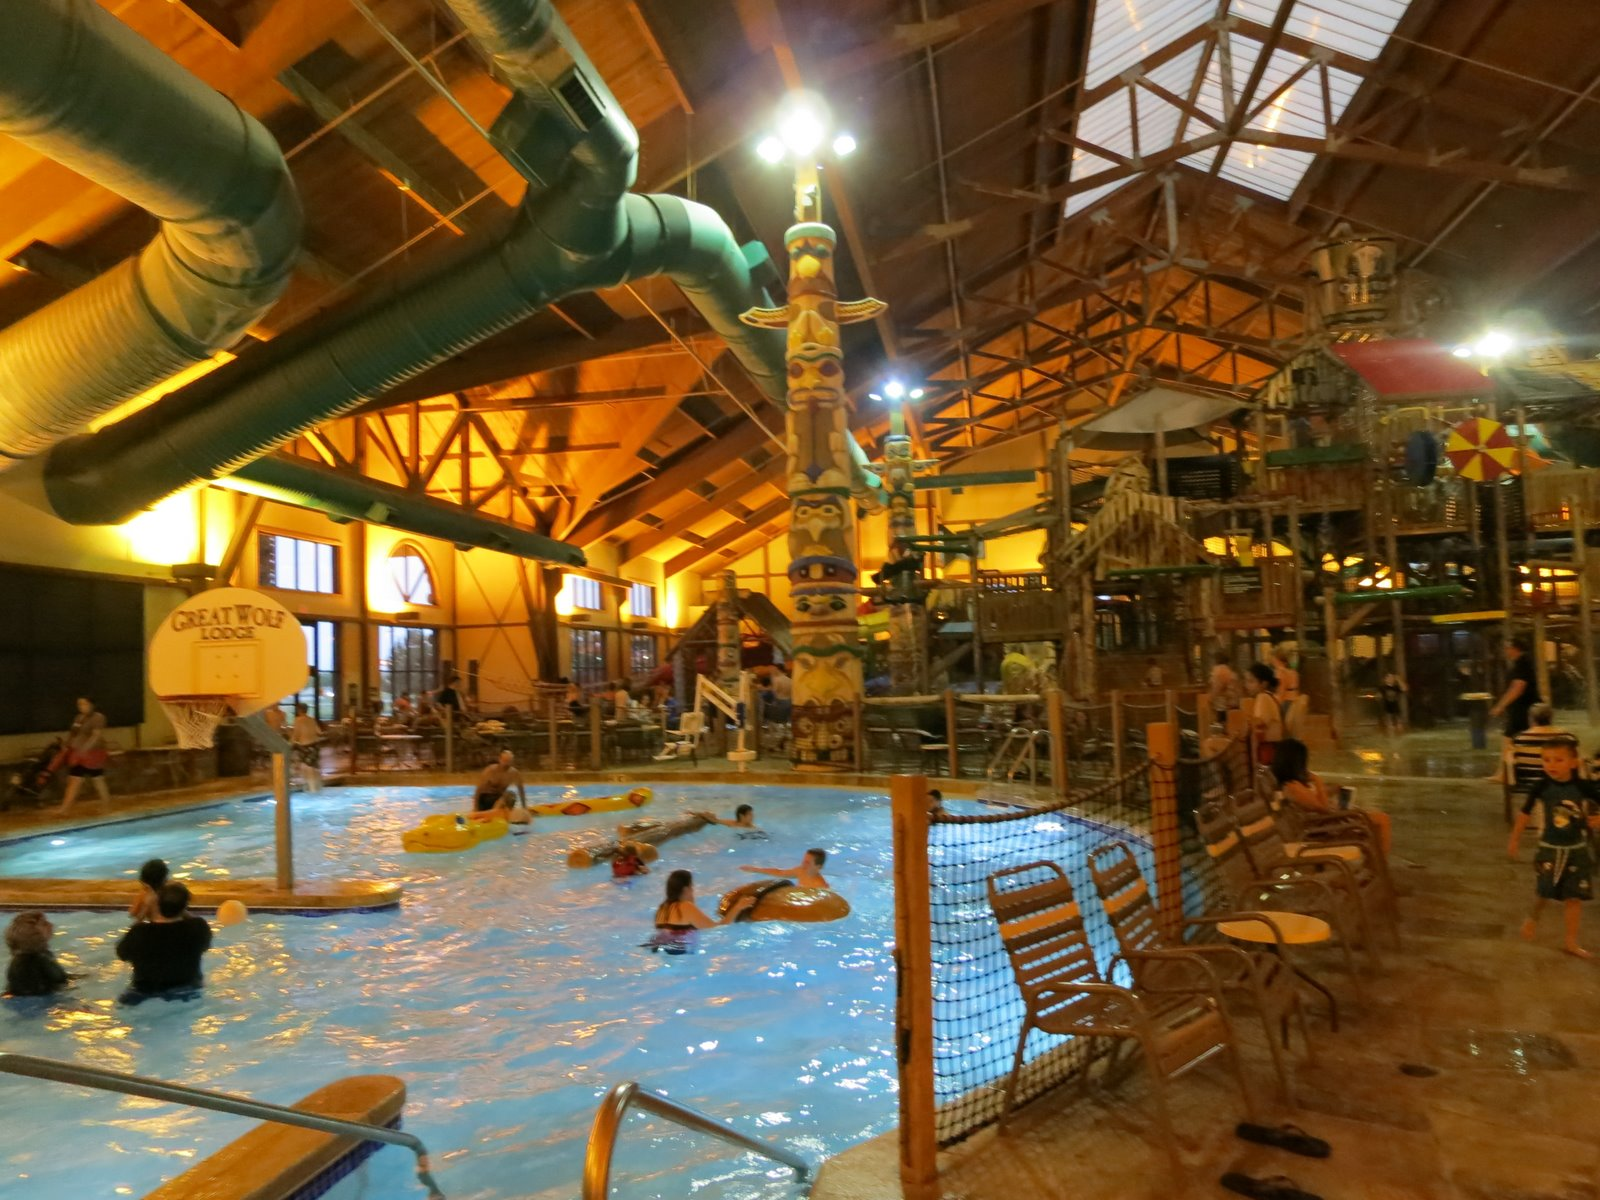 Hotels Near Great Wolf Lodge